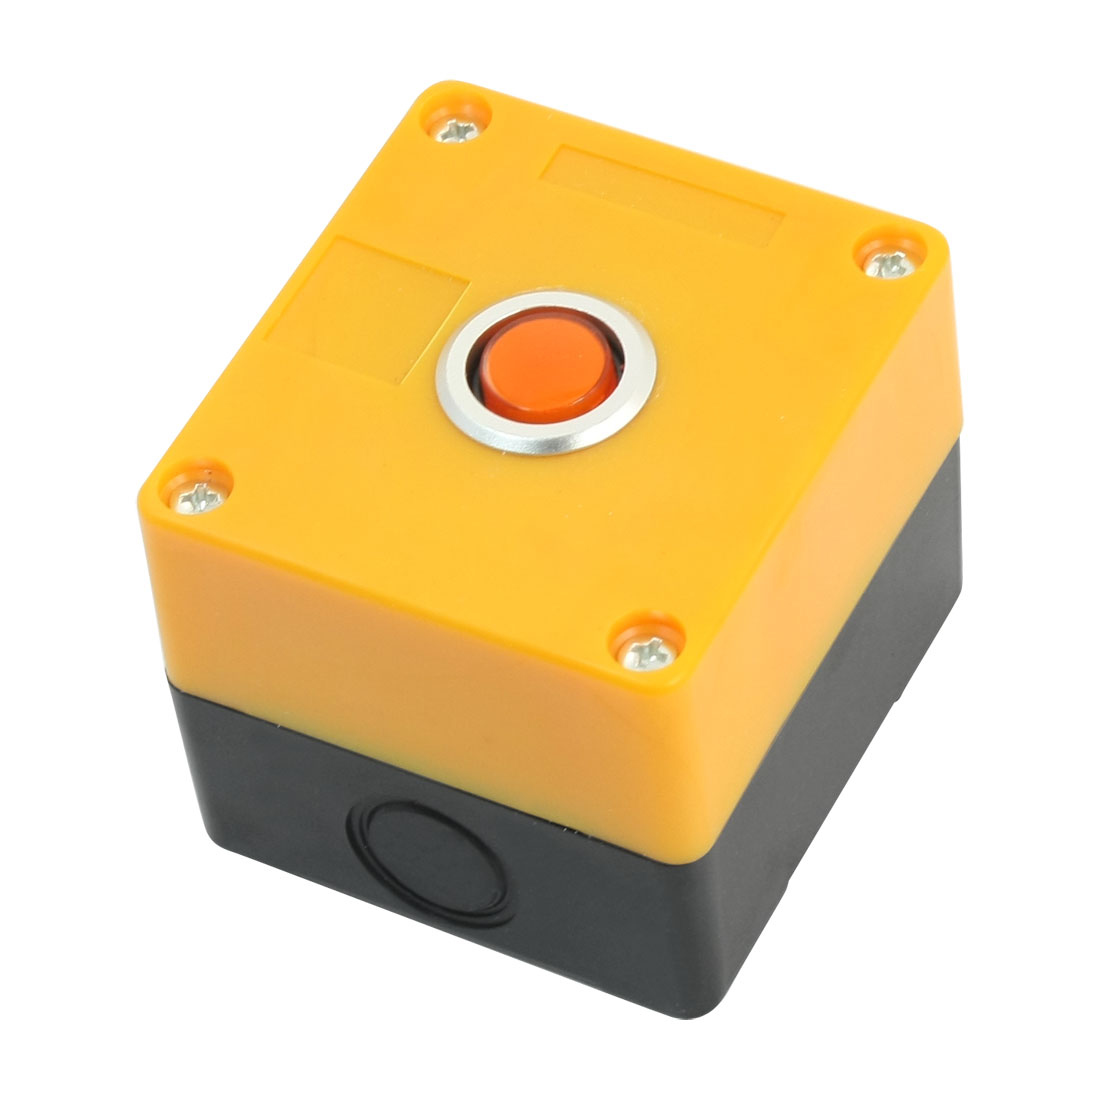 Orange 12V Pilot Lamp AC 250 Volt 5A SPDT 5 Terminals Momentary Single Hole Pushbutton Push Button Yellow Plastic Control Station Box